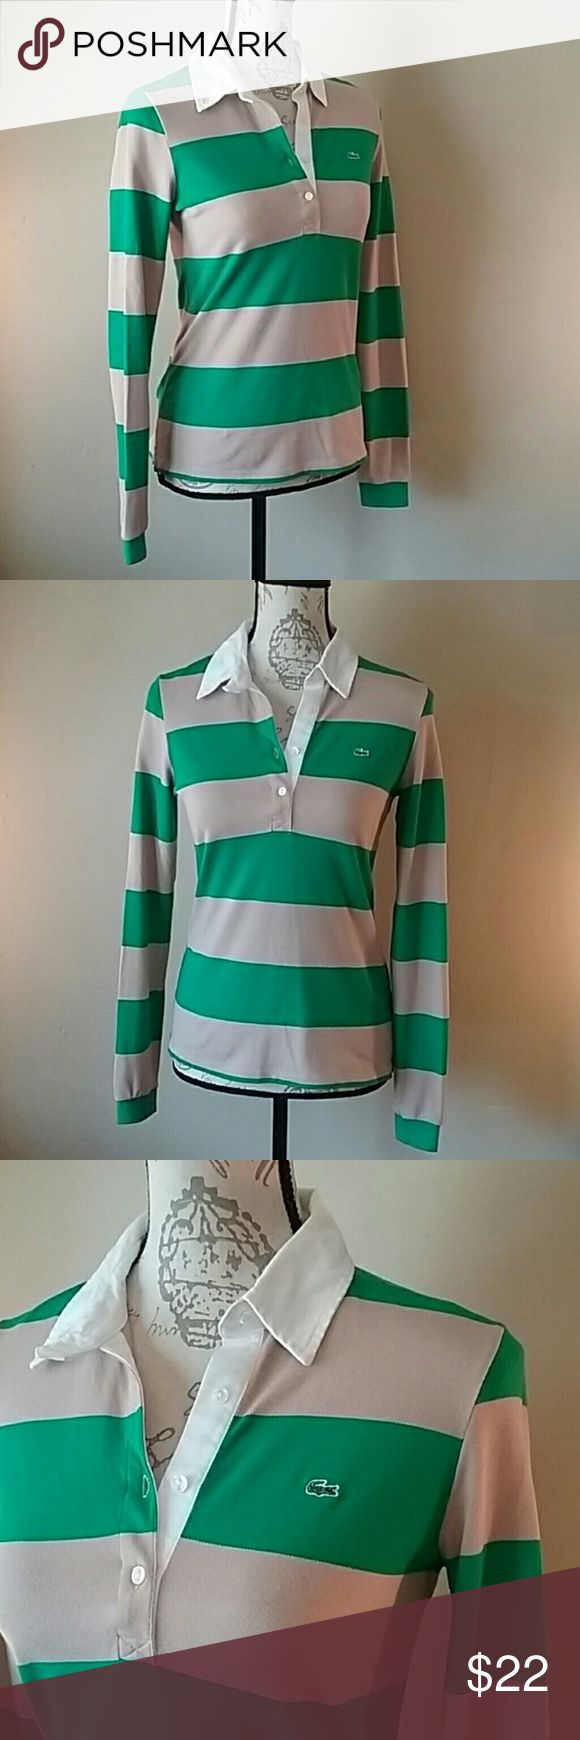 """NWOT Lacoste long-slv polo in the latest colors Perfect... The grass green is the """"it"""" color. Lacoste is pricy, unless you find it at an outlet store or something.  35 inch bust and 23 inches tall. Washable. Lacoste Tops"""